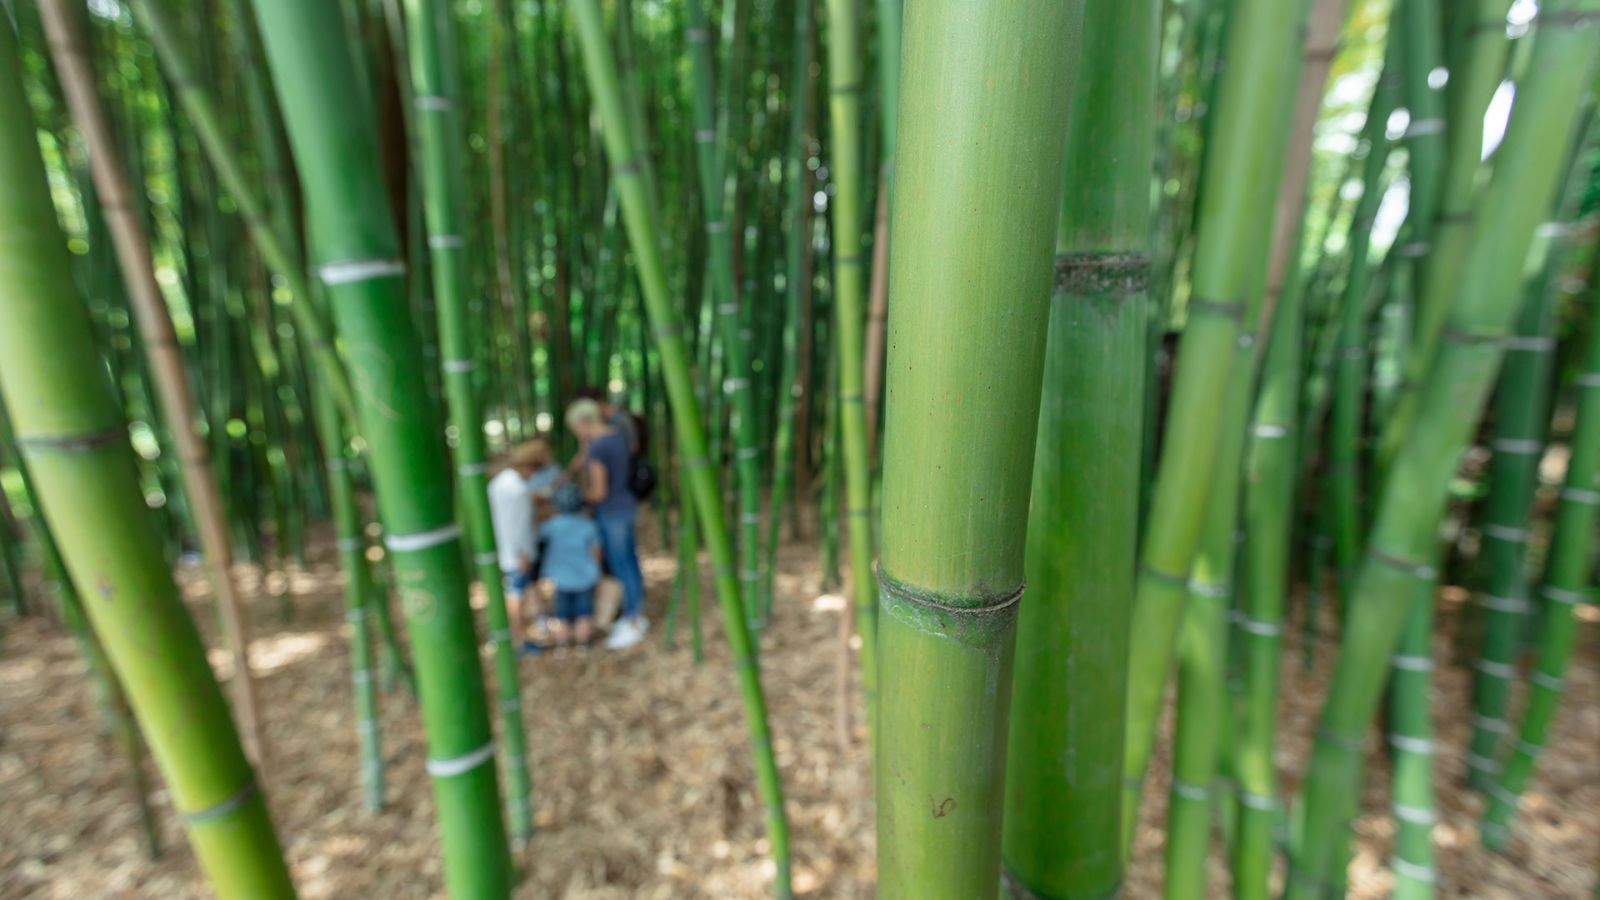 Lost in the Bamboo canes